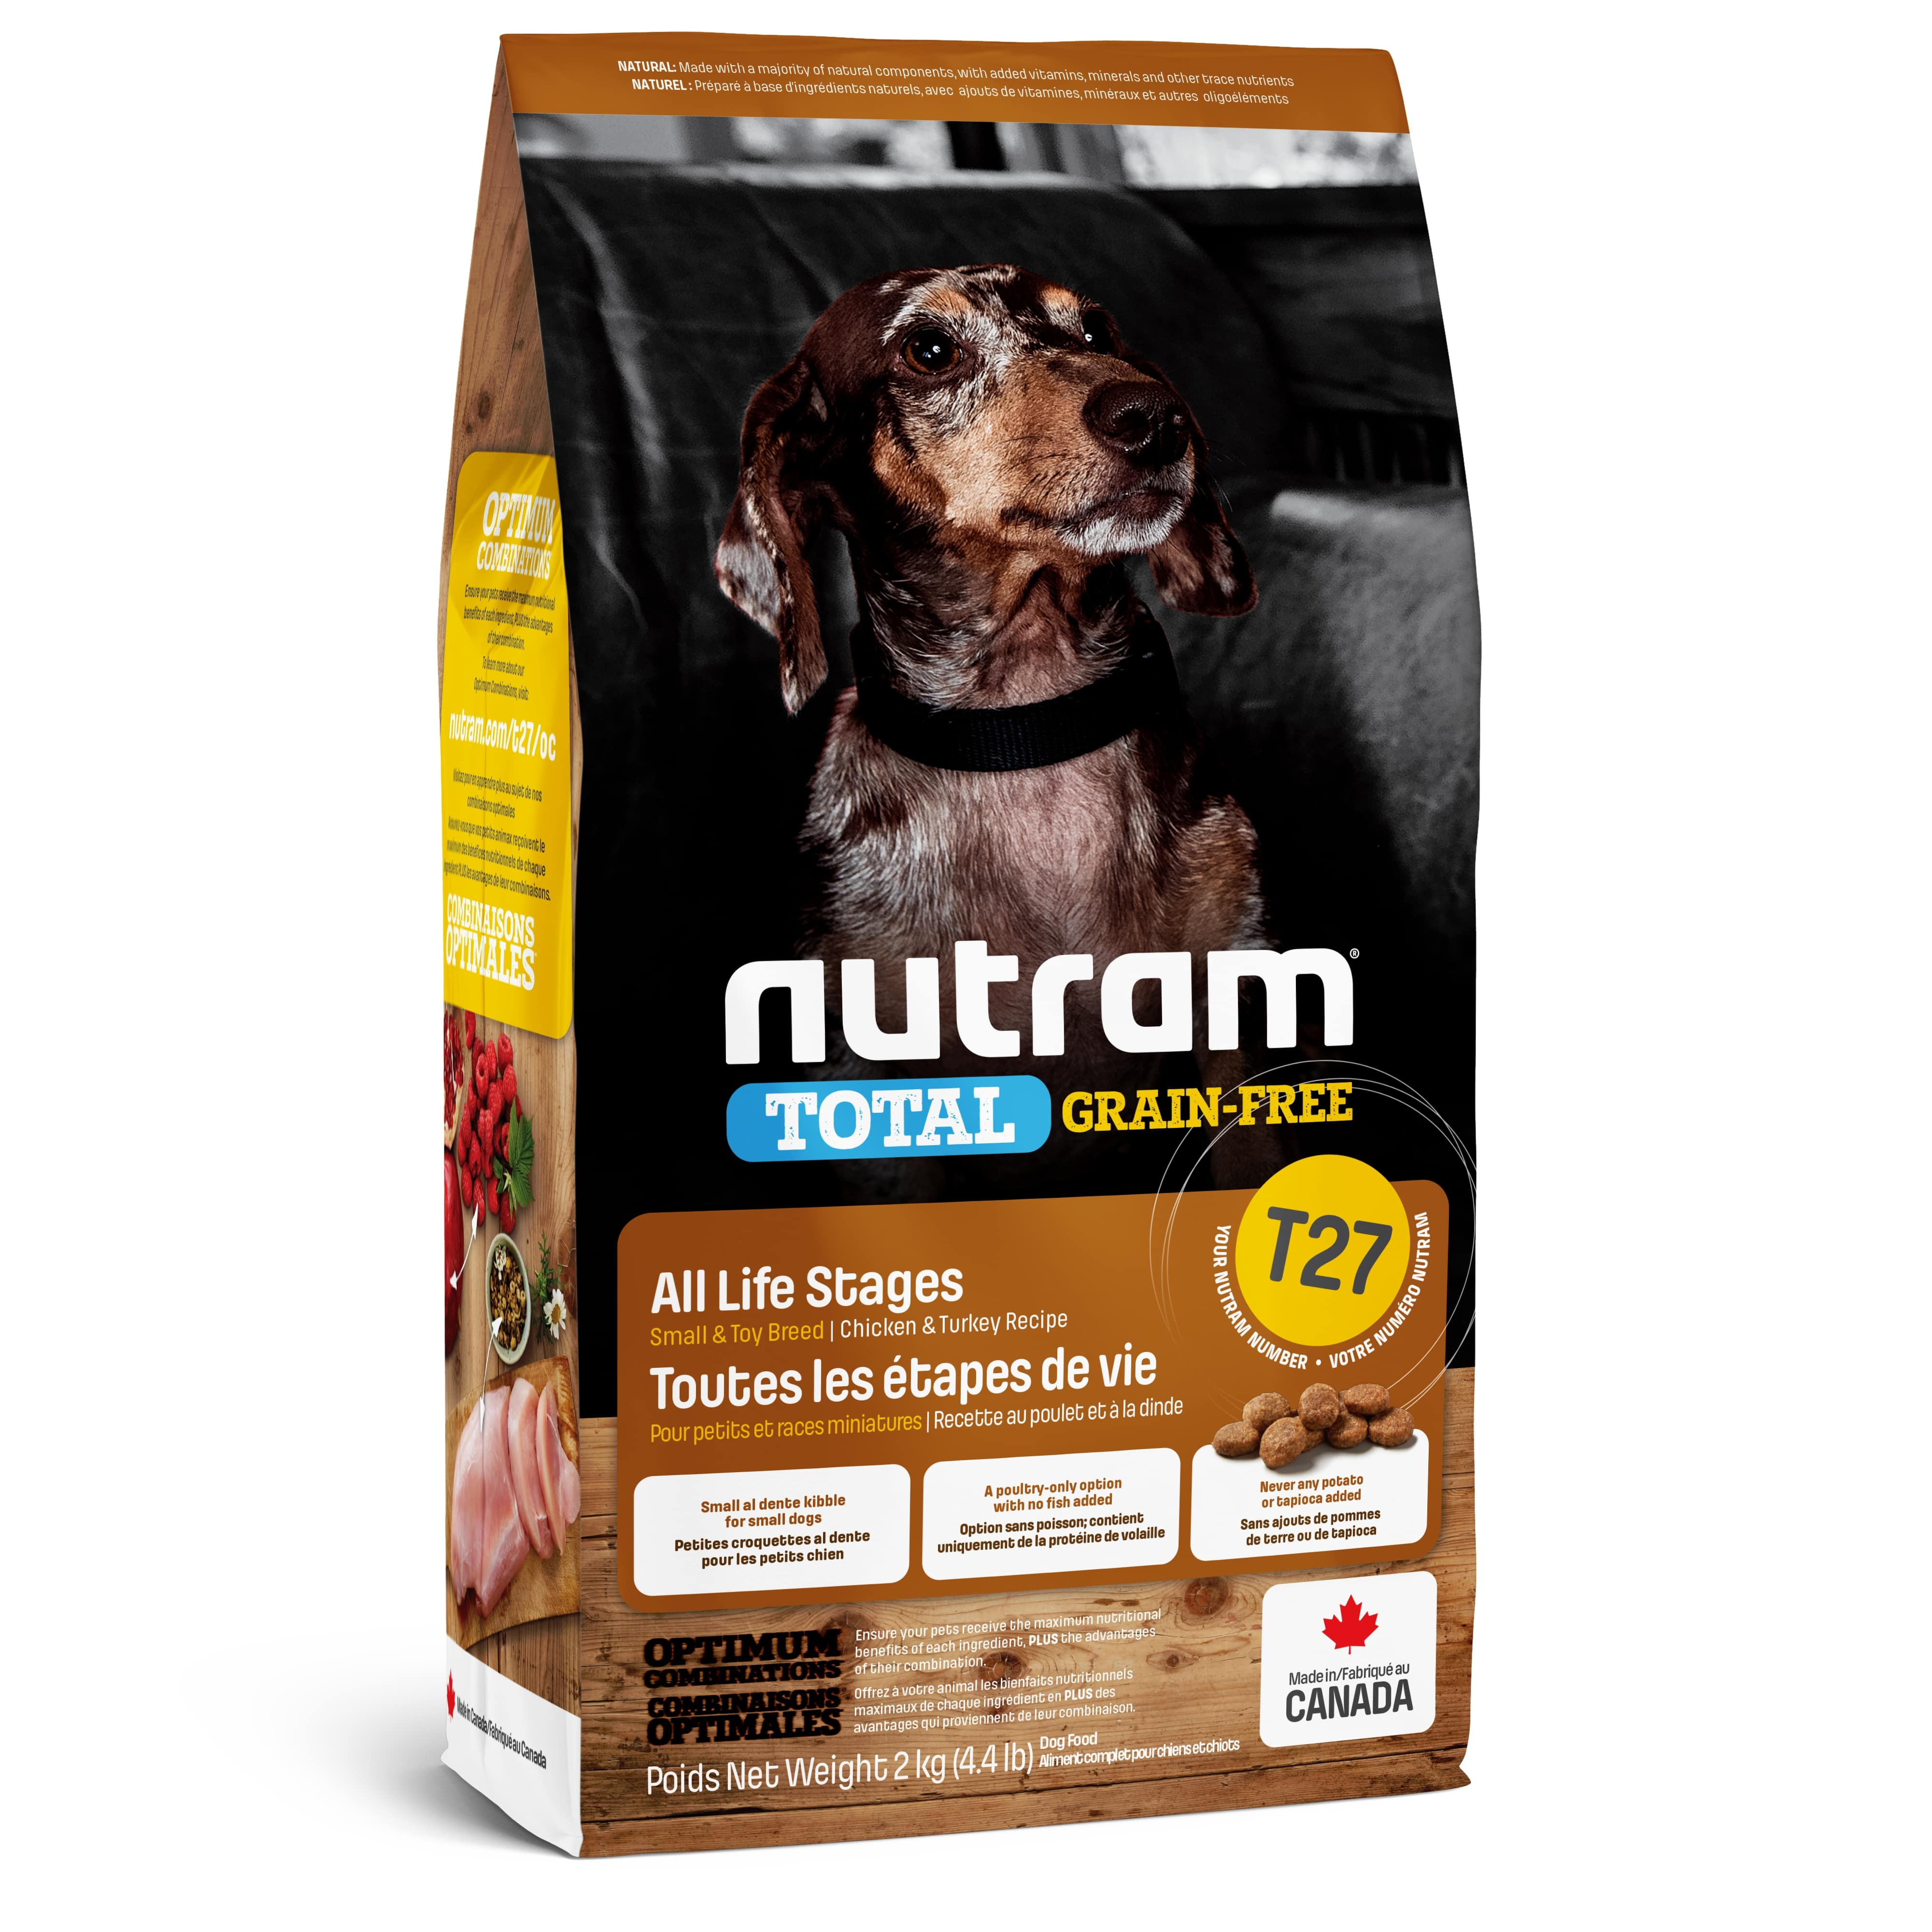 T27 Nutram Total Grain-Free® Turkey & Chiken Small Breed Dog Food